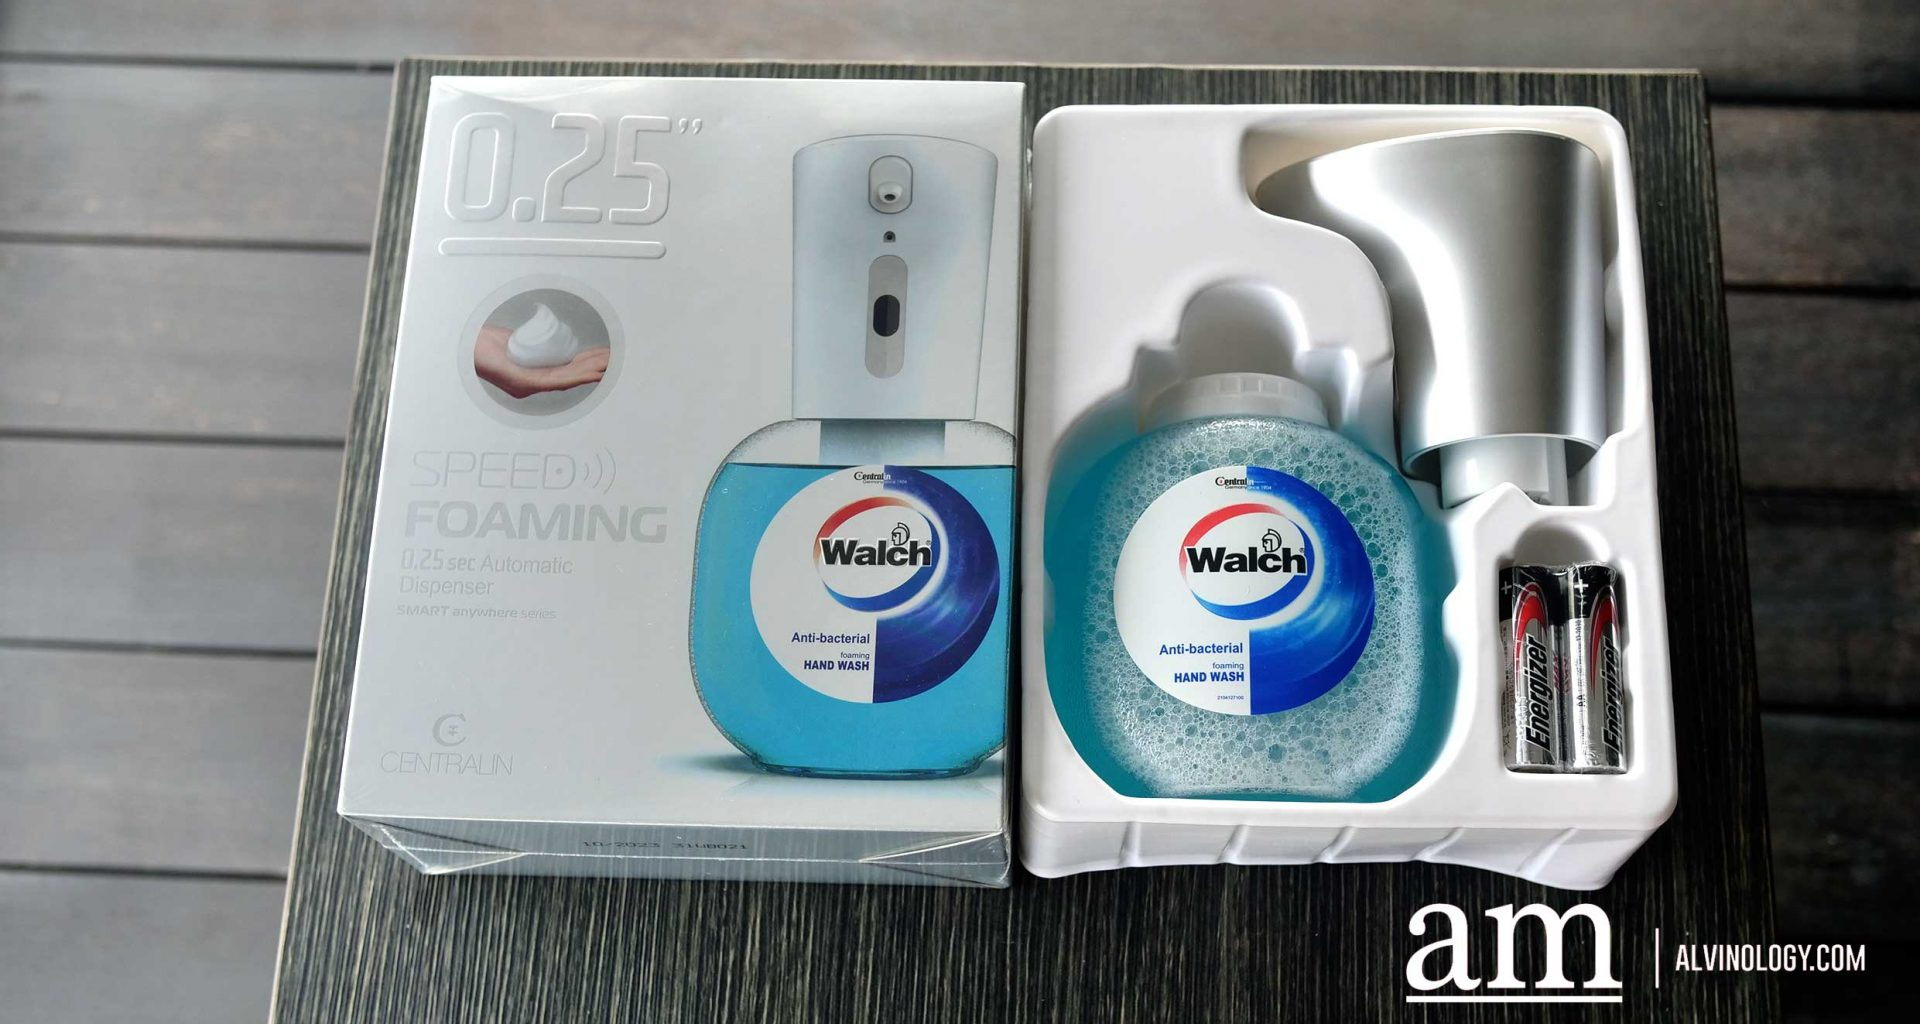 [REVIEW] Walch Speed Foaming Automatic Hand Wash - Alvinology